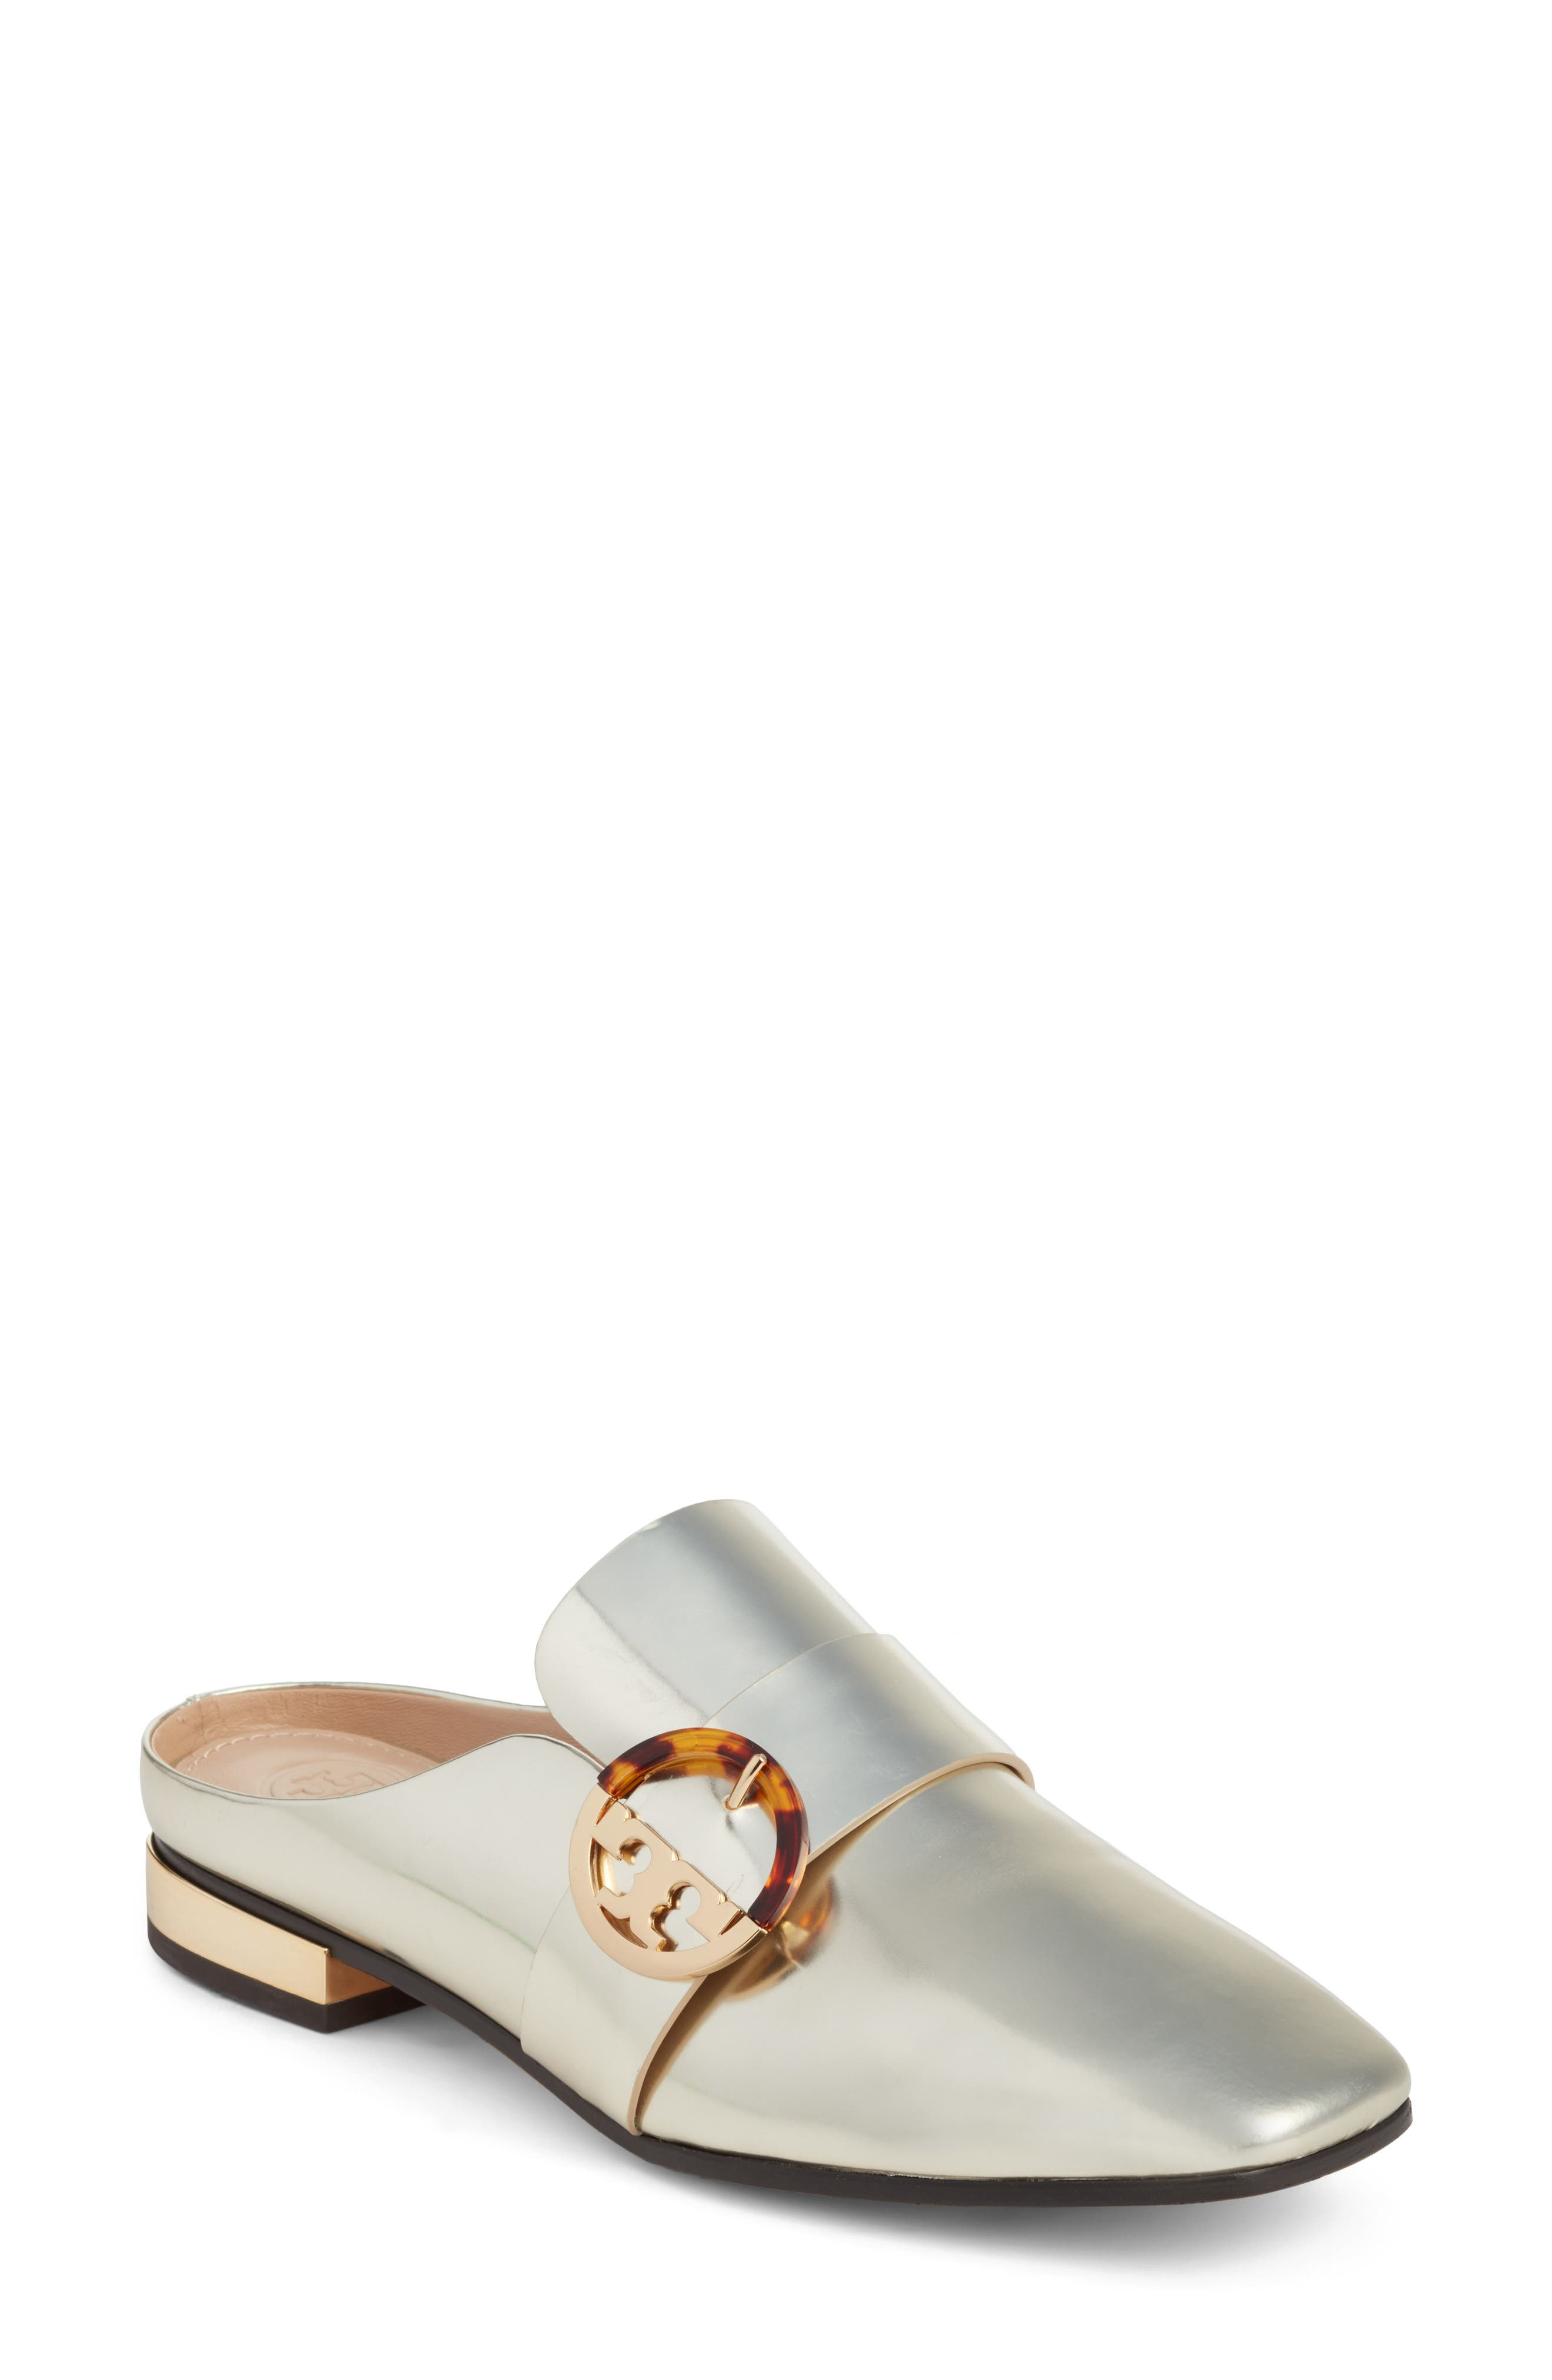 Alternate Image 1 Selected - Tory Burch Sidney Backless Loafer (Women)